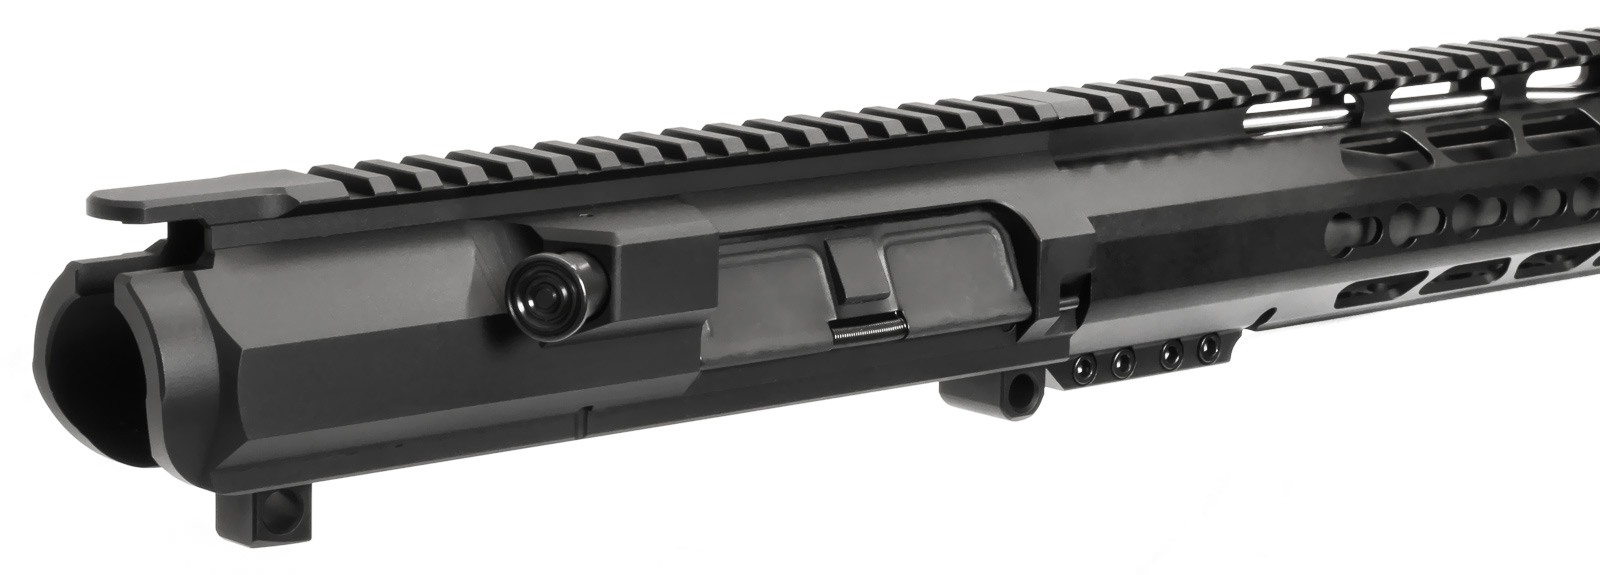 ar-10-upper-assembly-20-308-win-110-15-cbc-industries-keymod-ar-10-handguard-rail-3